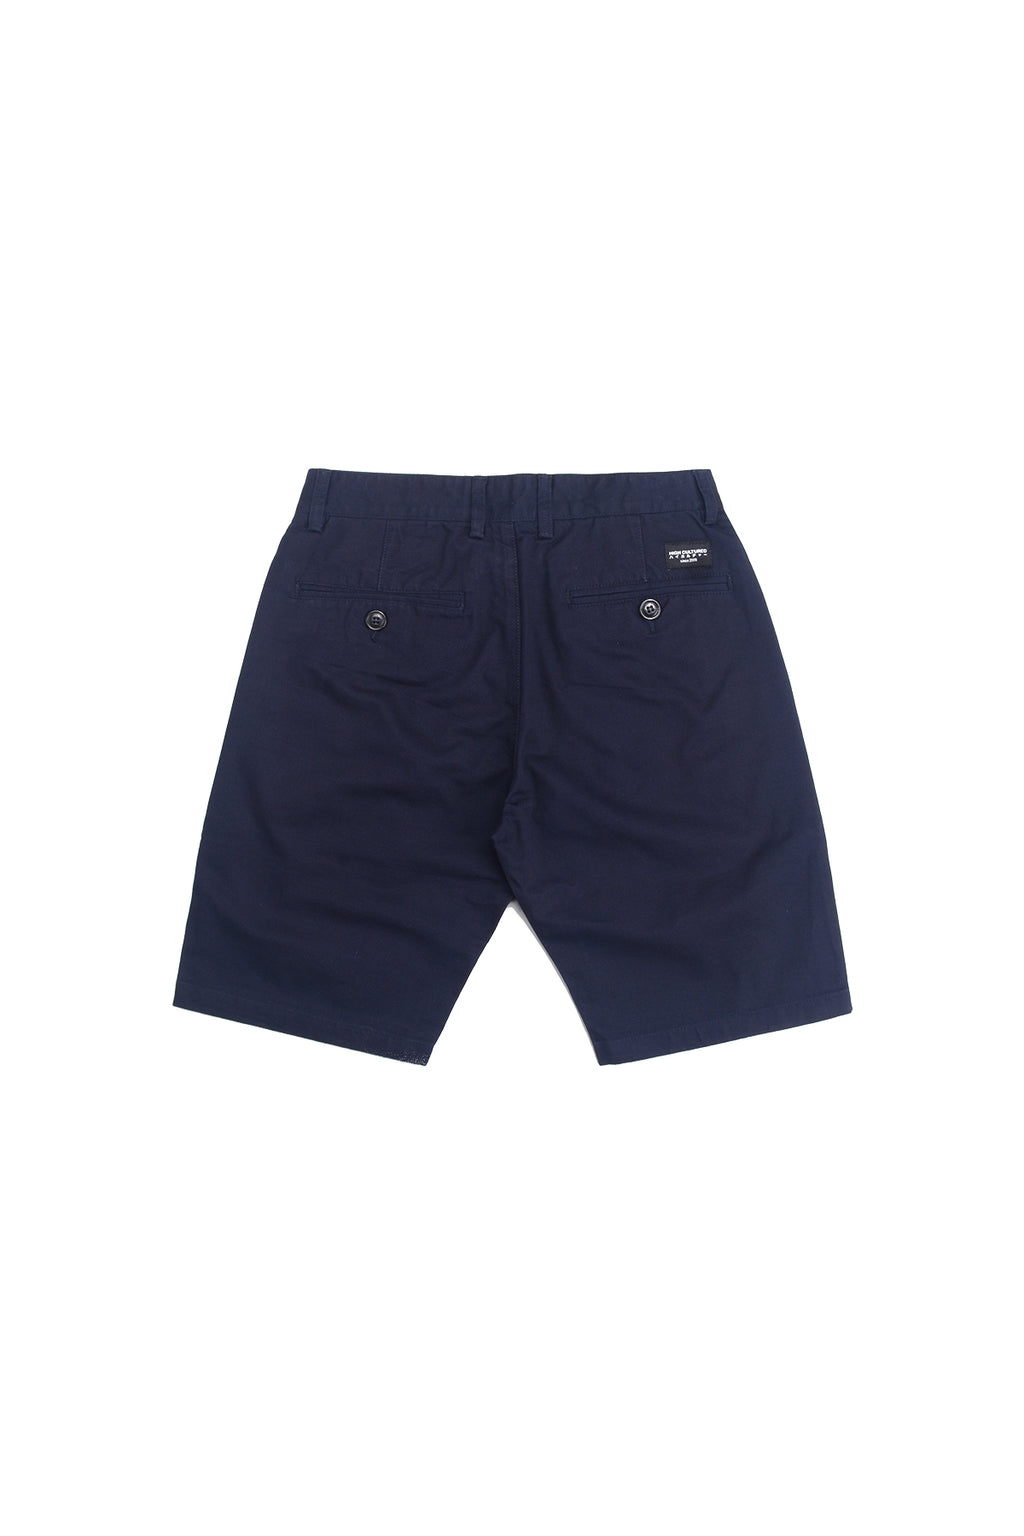 STANDARD-FIT CHINO SHORT PANT | NAVY - 94